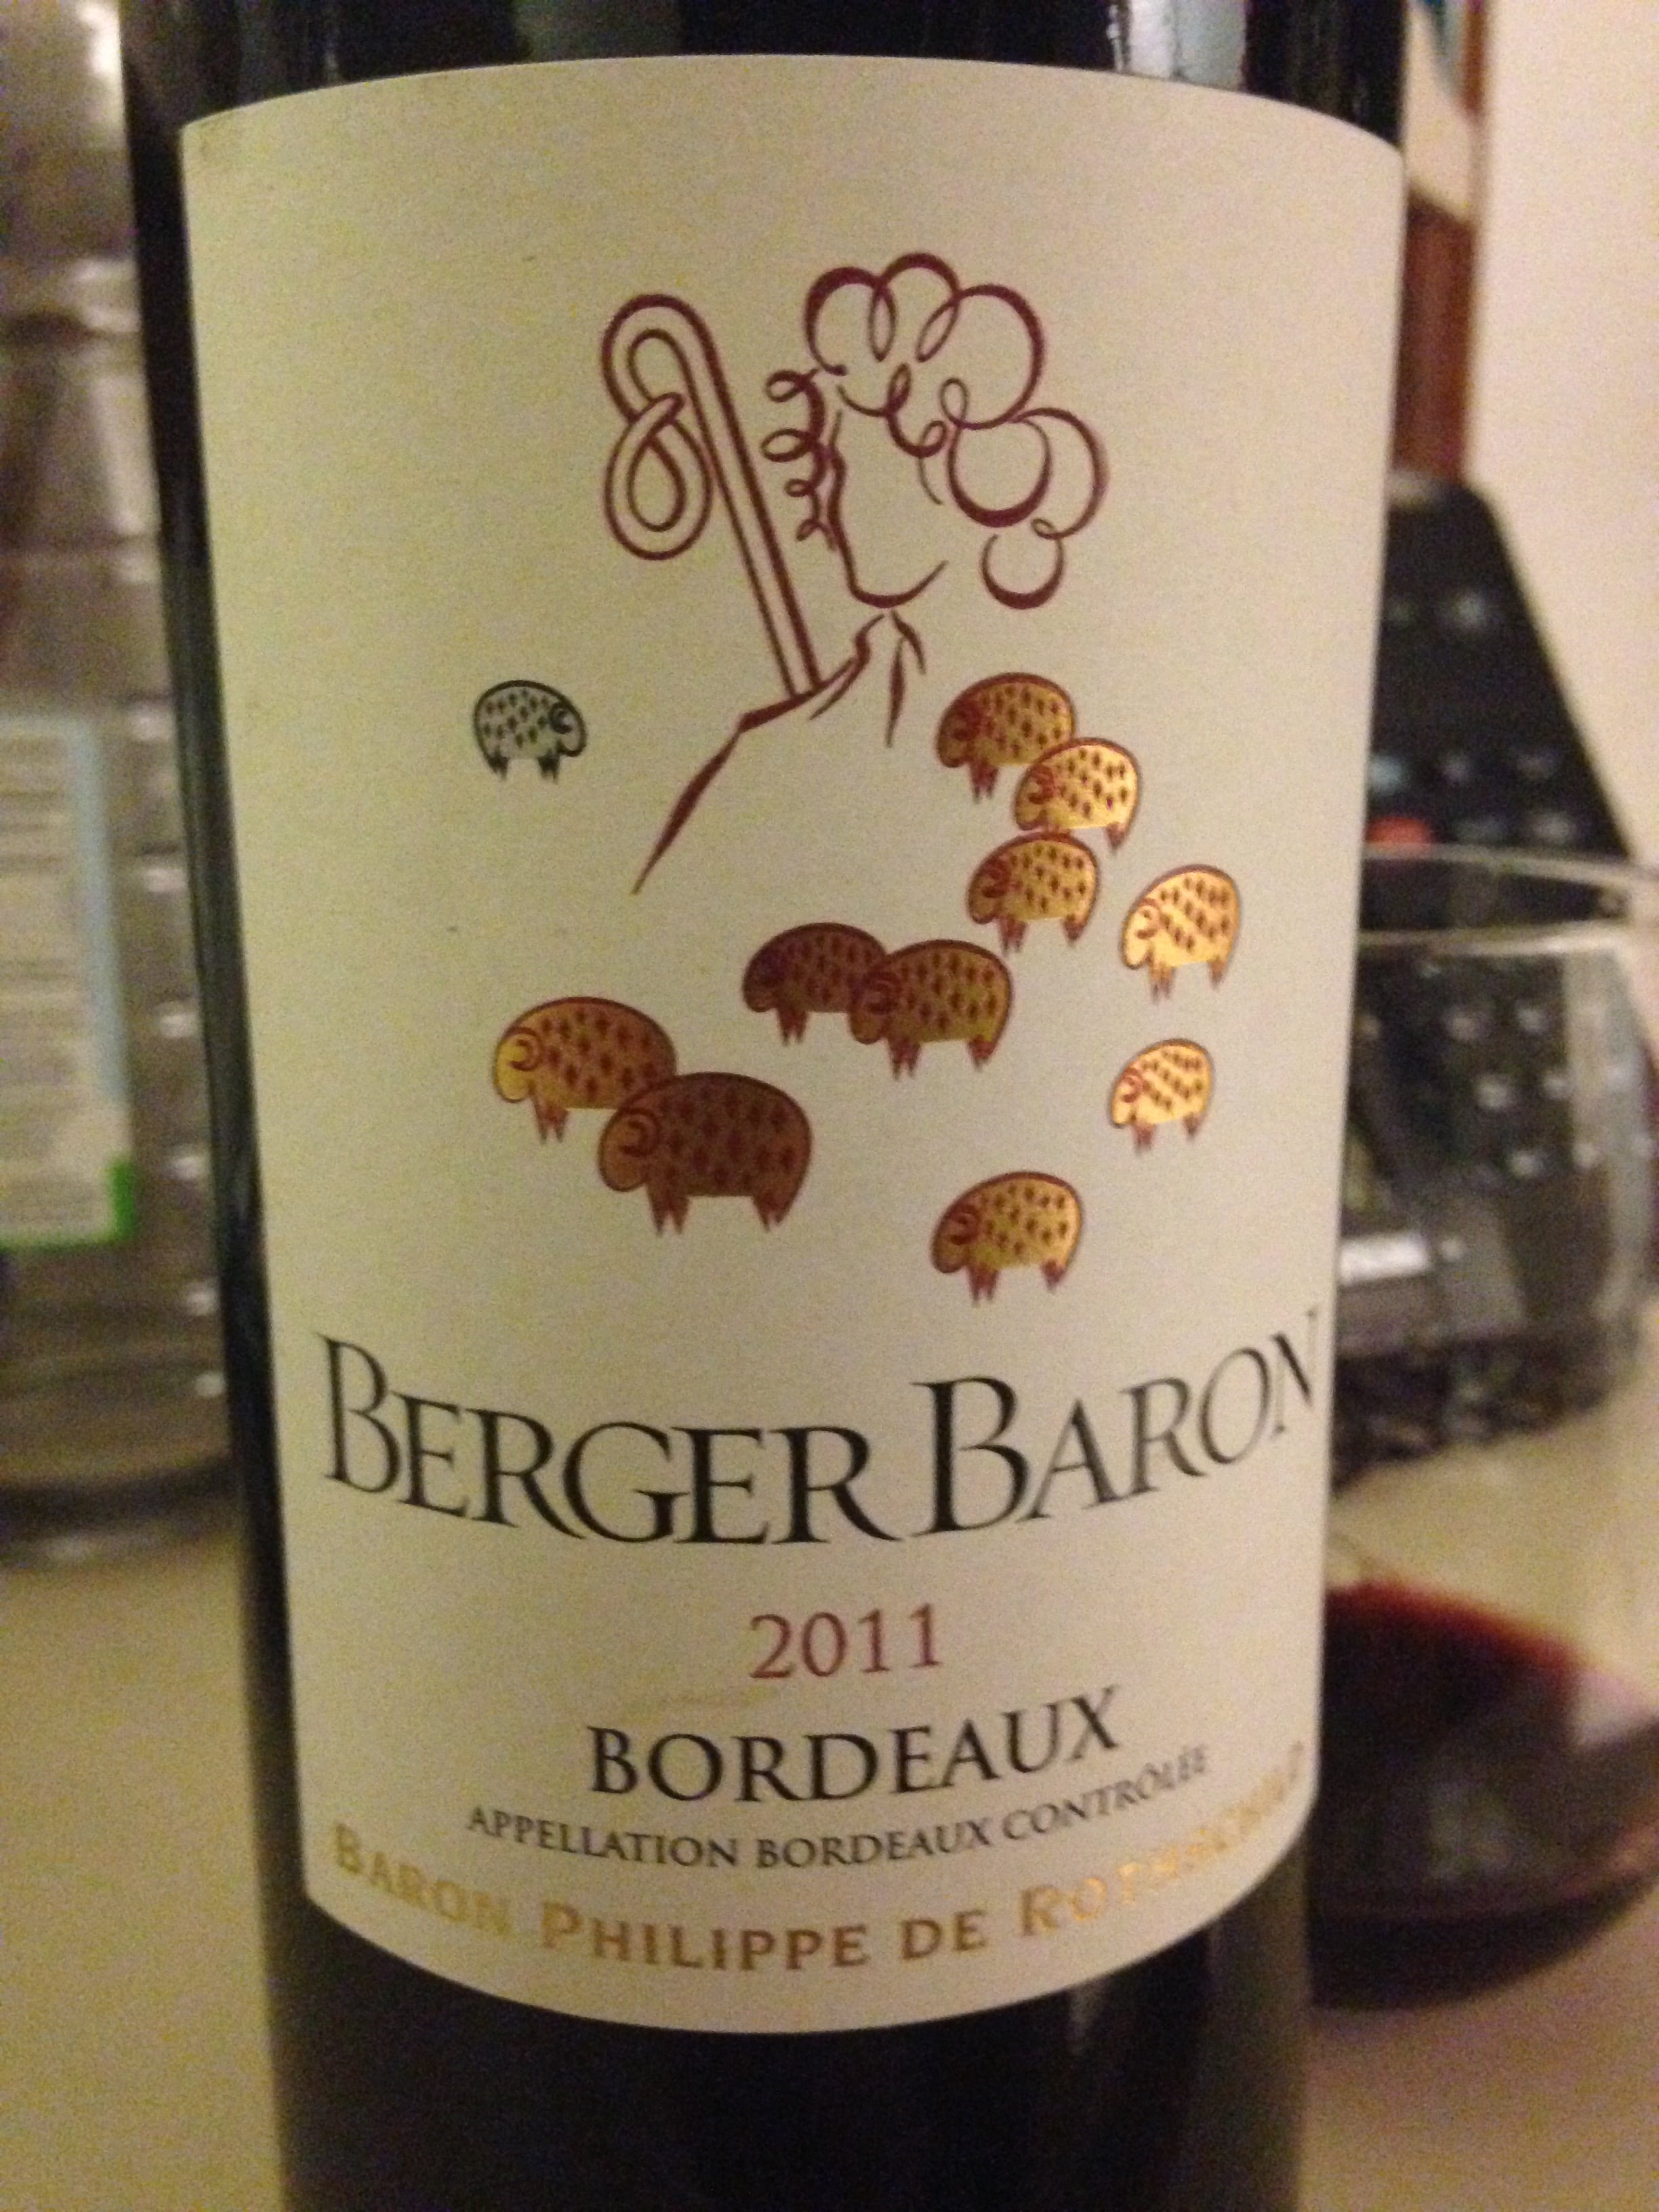 Berger Baron Bordeaux 2011